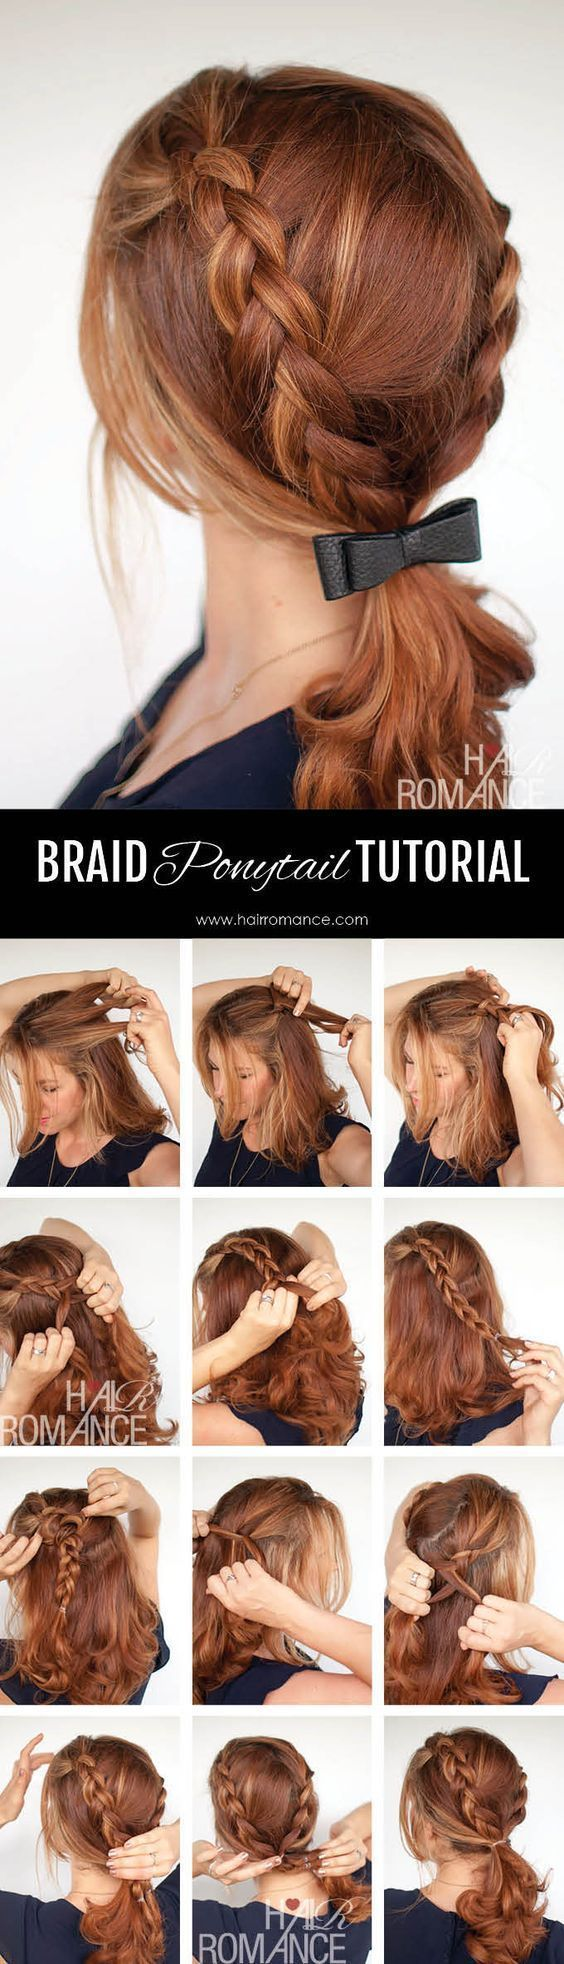 one hundred Tremendous Straightforward DIY Braided Hairstyles for Wedding ceremo...